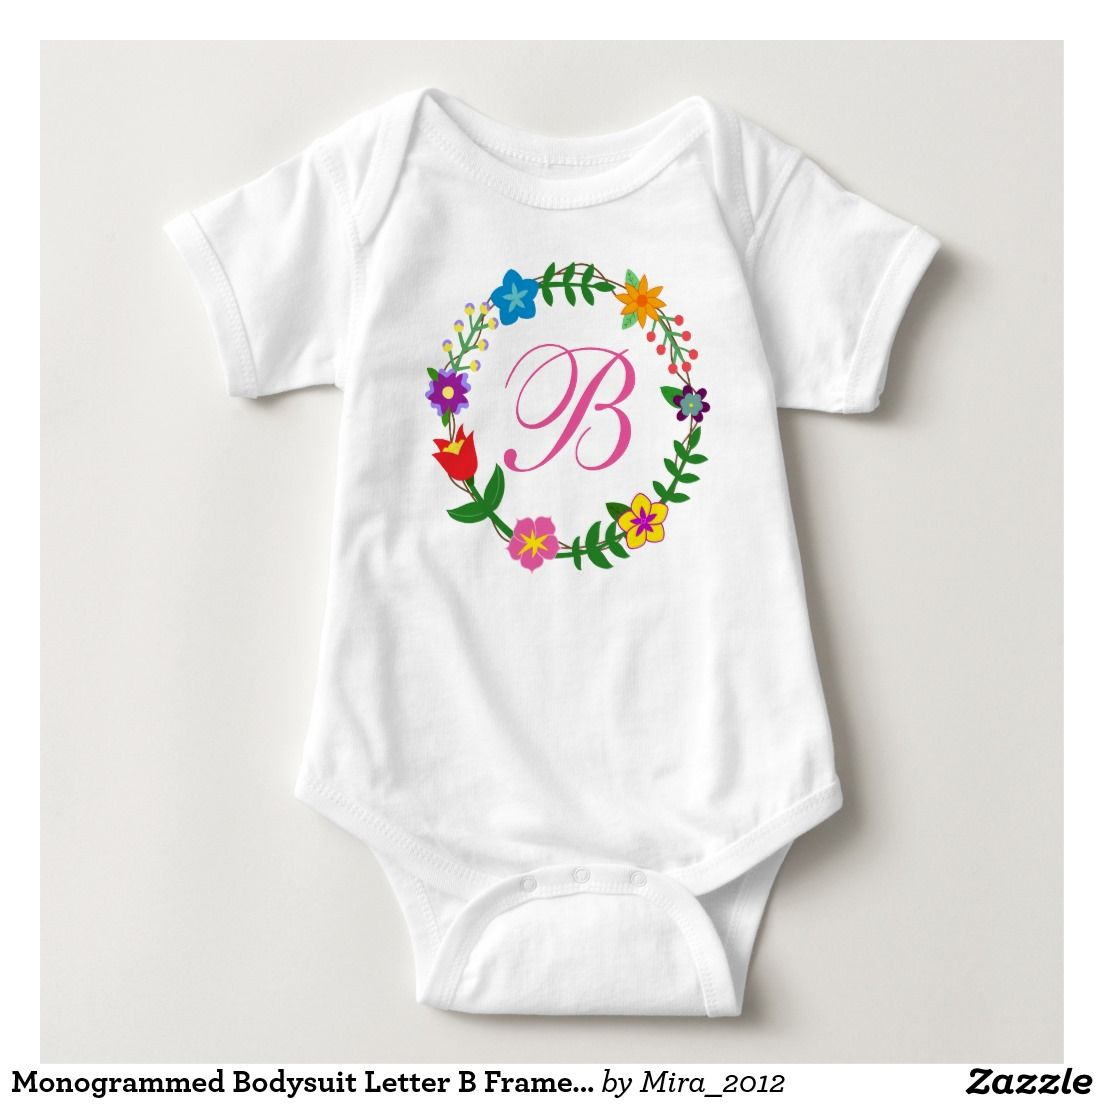 Monogrammed Bodysuit Letter B Frame Flowers. great gift for new baby girls named bailey, barbra, barbara, beyonce, beata, beatrice, beatrix, bela, bella, belinda, benedicta, bernadette, bernadetta, bernadine, berri, berry, berthe, bethany, bette, bianca, you name it ;) :D. note that there are two kinds of monogrammed bodysuits for each letter of the english alphabet